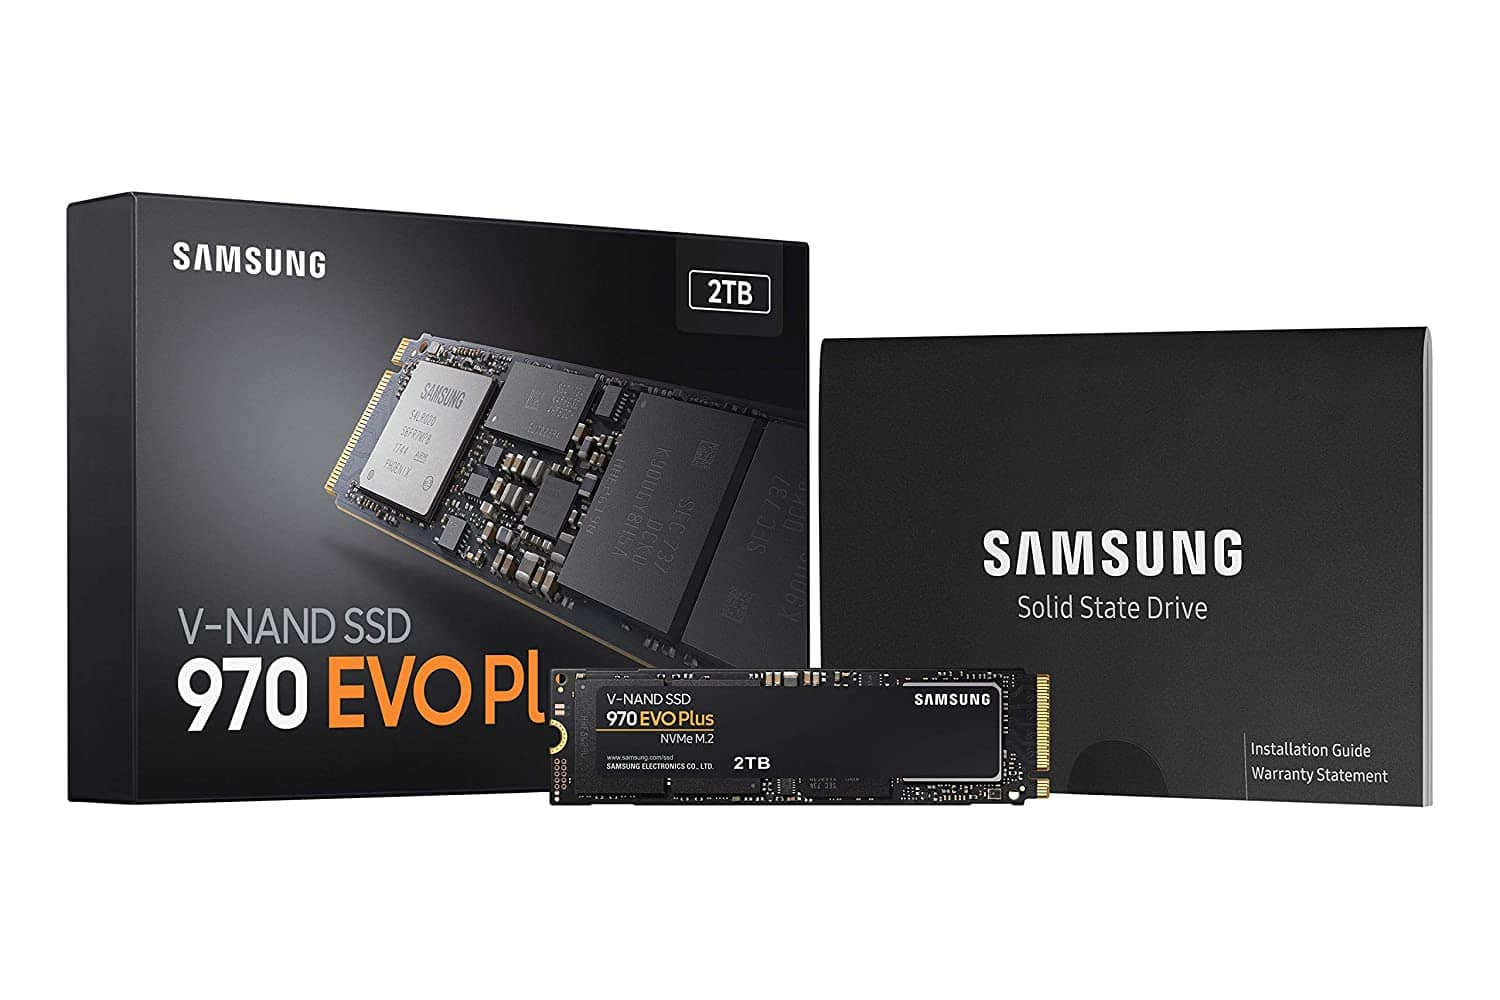 Samsung 970 EVO Plus Series - 2TB PCIe NVMe - M.2 Internal SSD (MZ-V7S2T0B/AM) $249.99